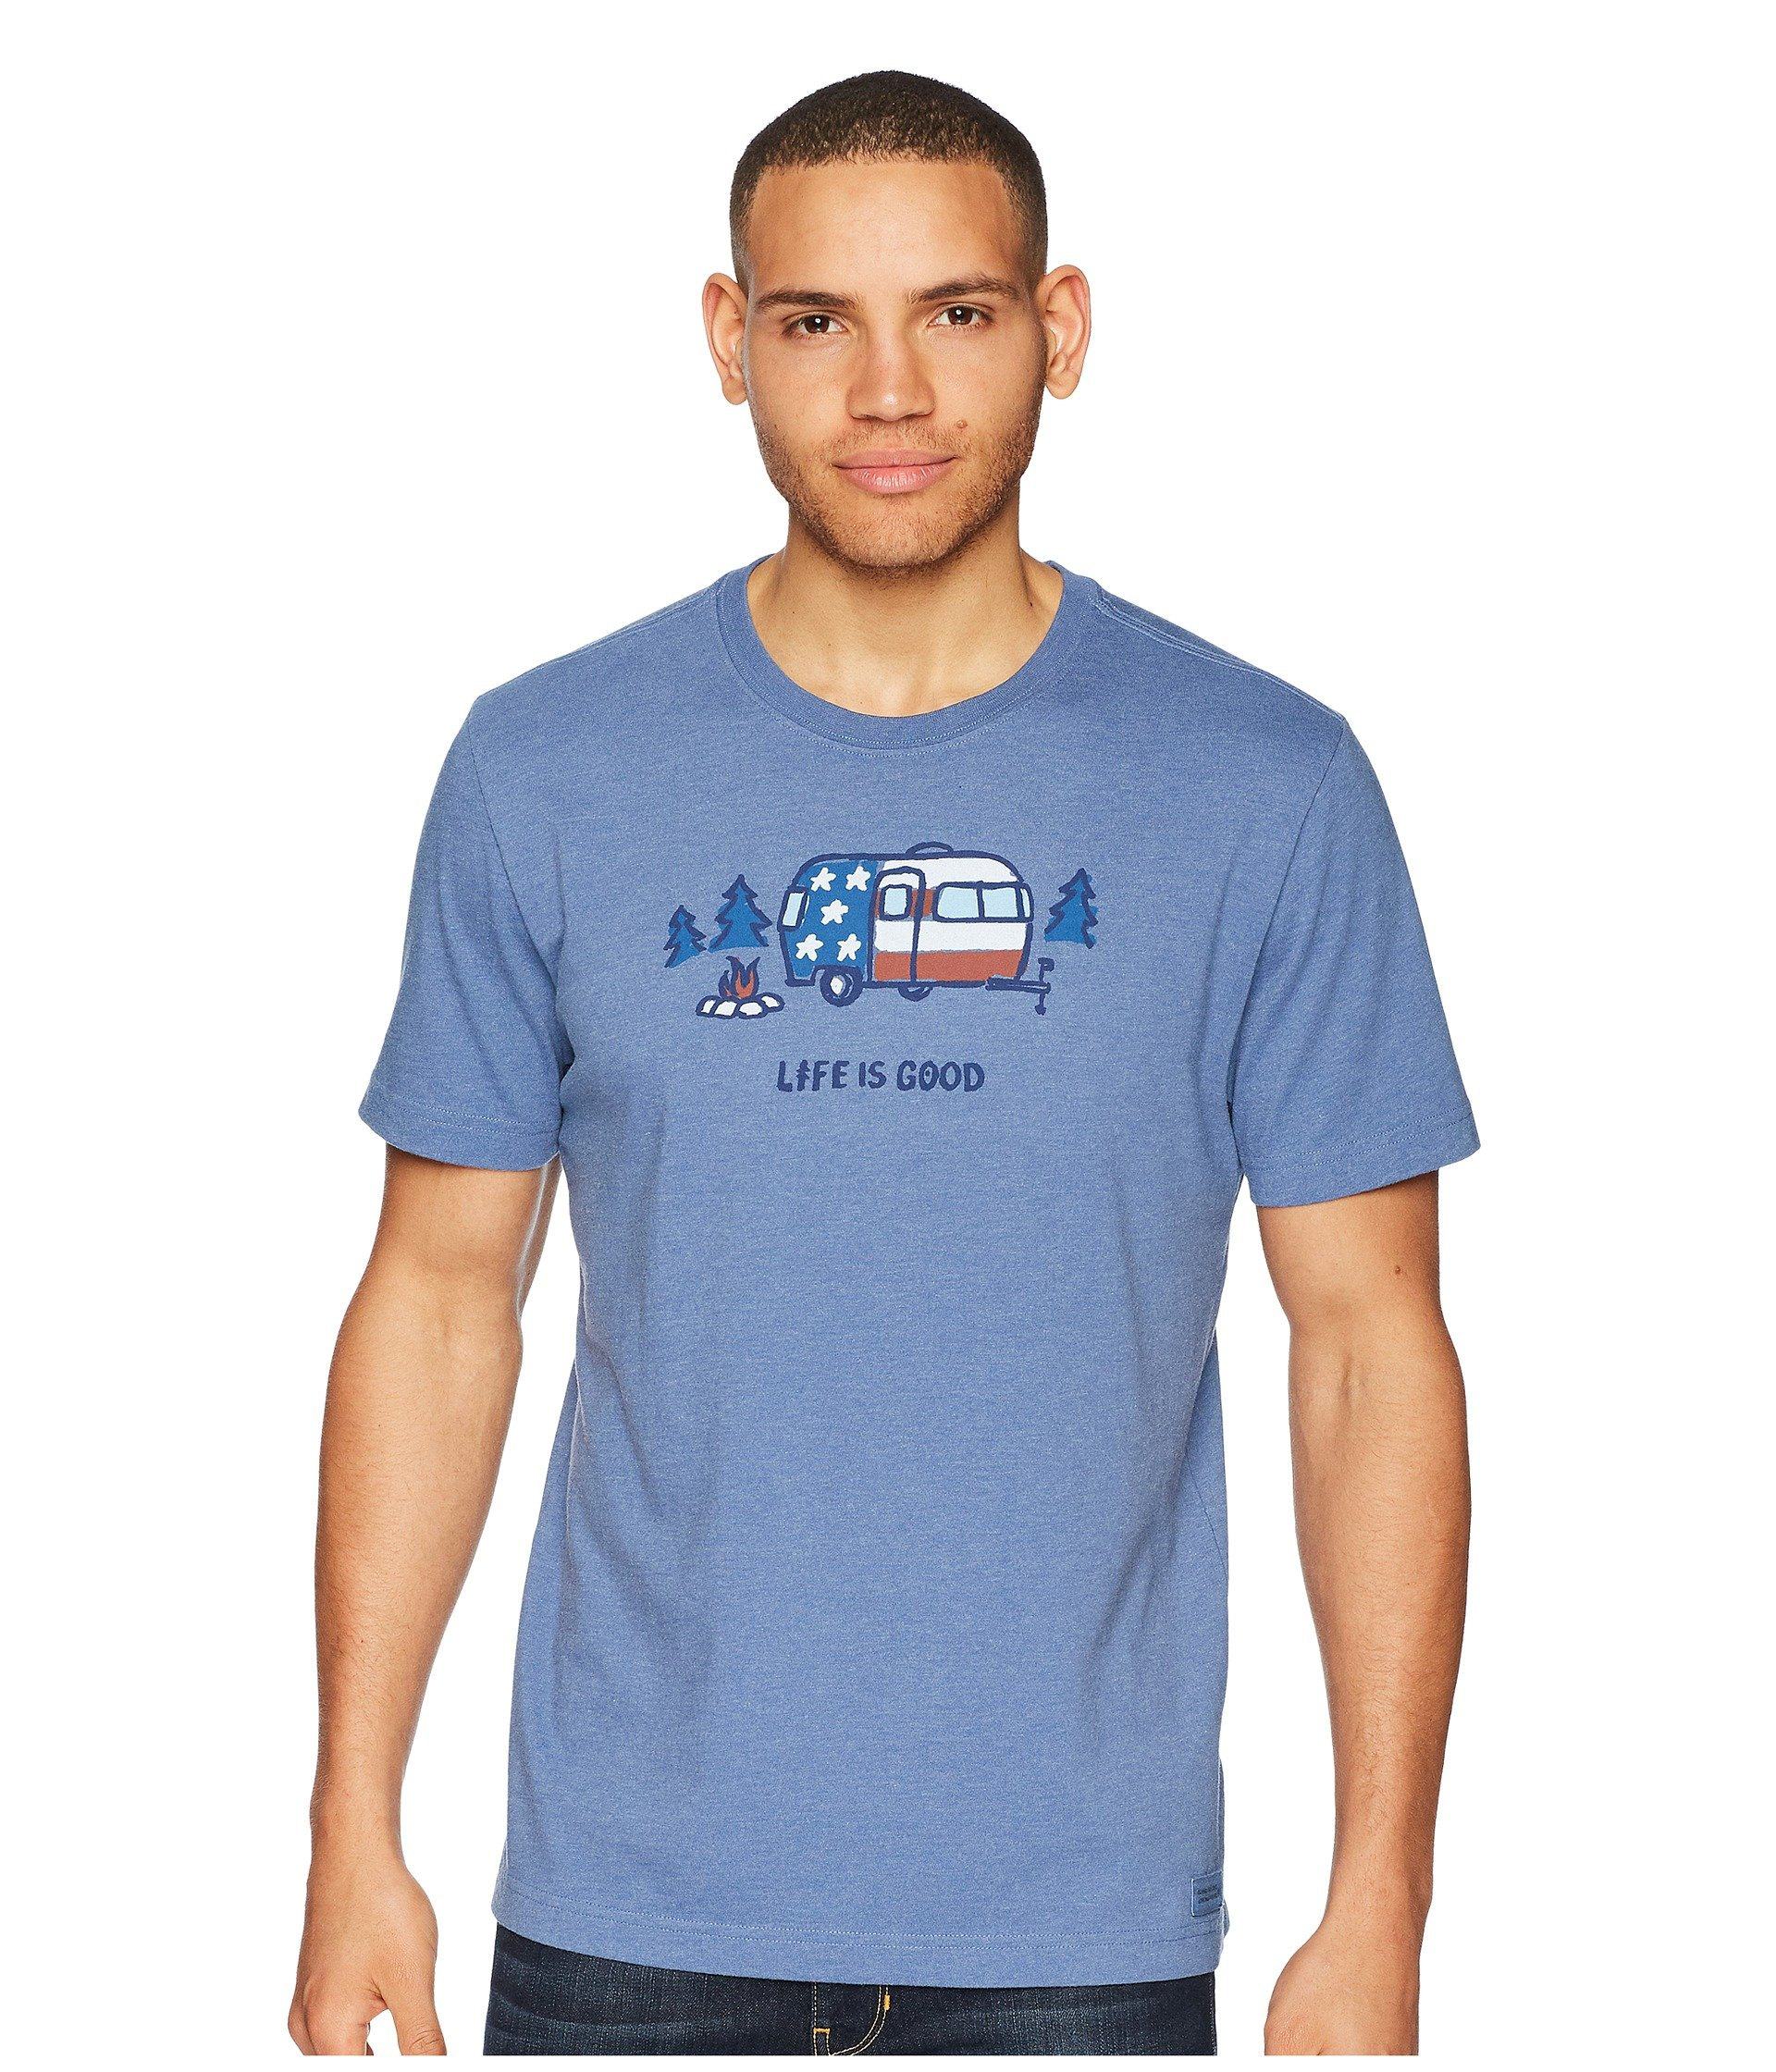 Tee Life Crusher Blue Is Americana Heather Vintage Good Camp ZCnBqwxFC